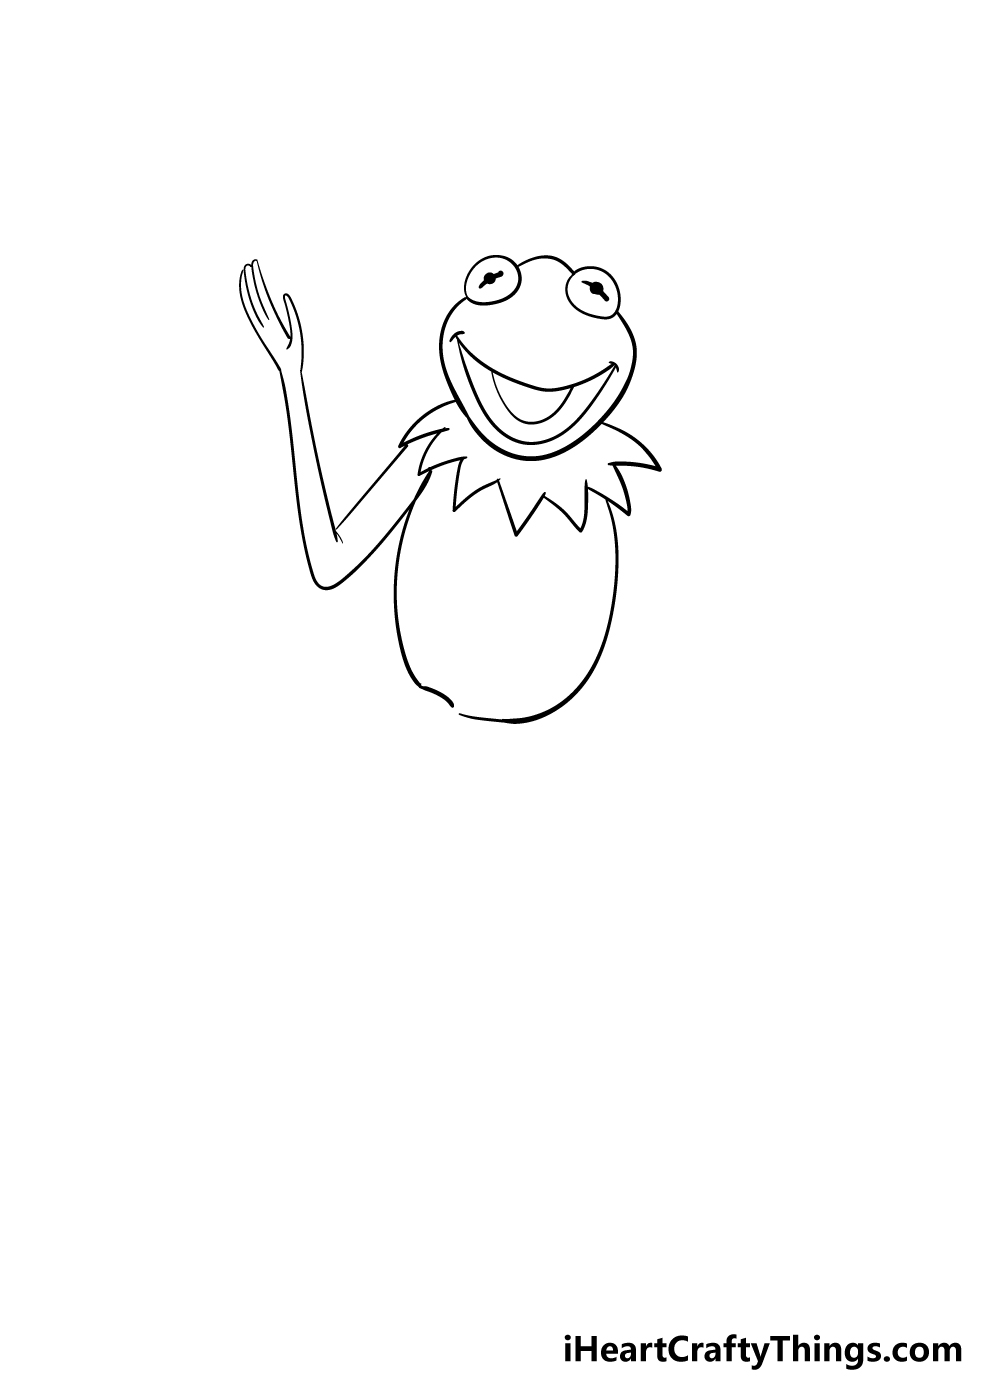 drawing Kermit the frog step 4